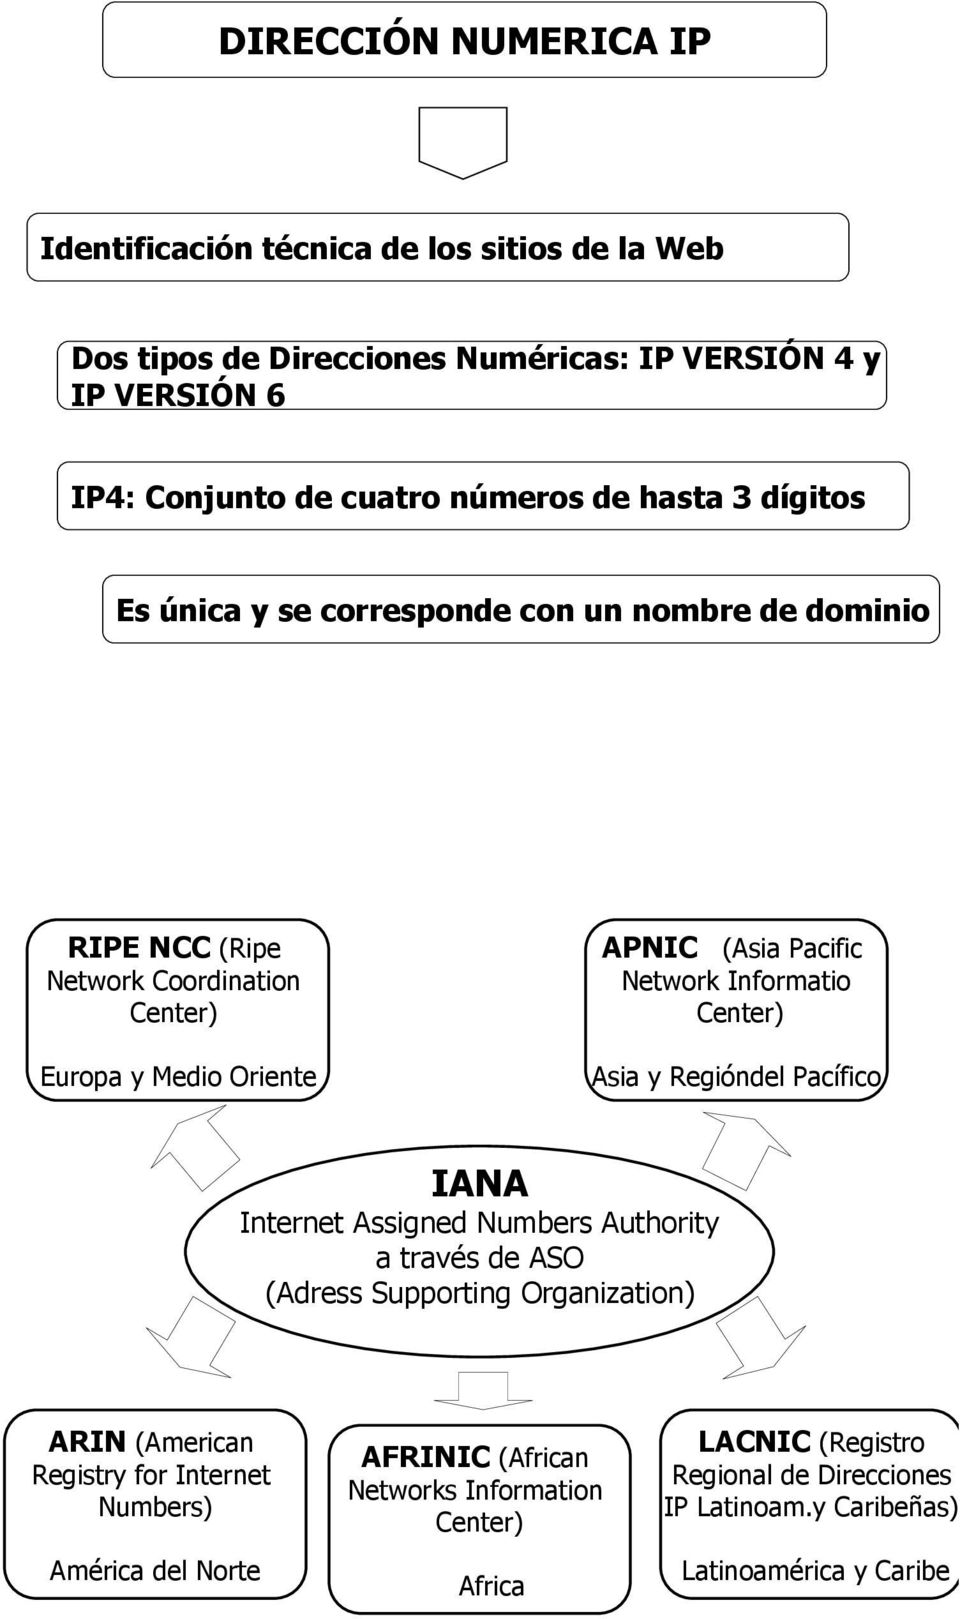 Informatio Center) Asia y Regióndel Pacífico IANA Internet Assigned Numbers Authority a través de ASO (Adress Supporting Organization) ARIN (American Registry for